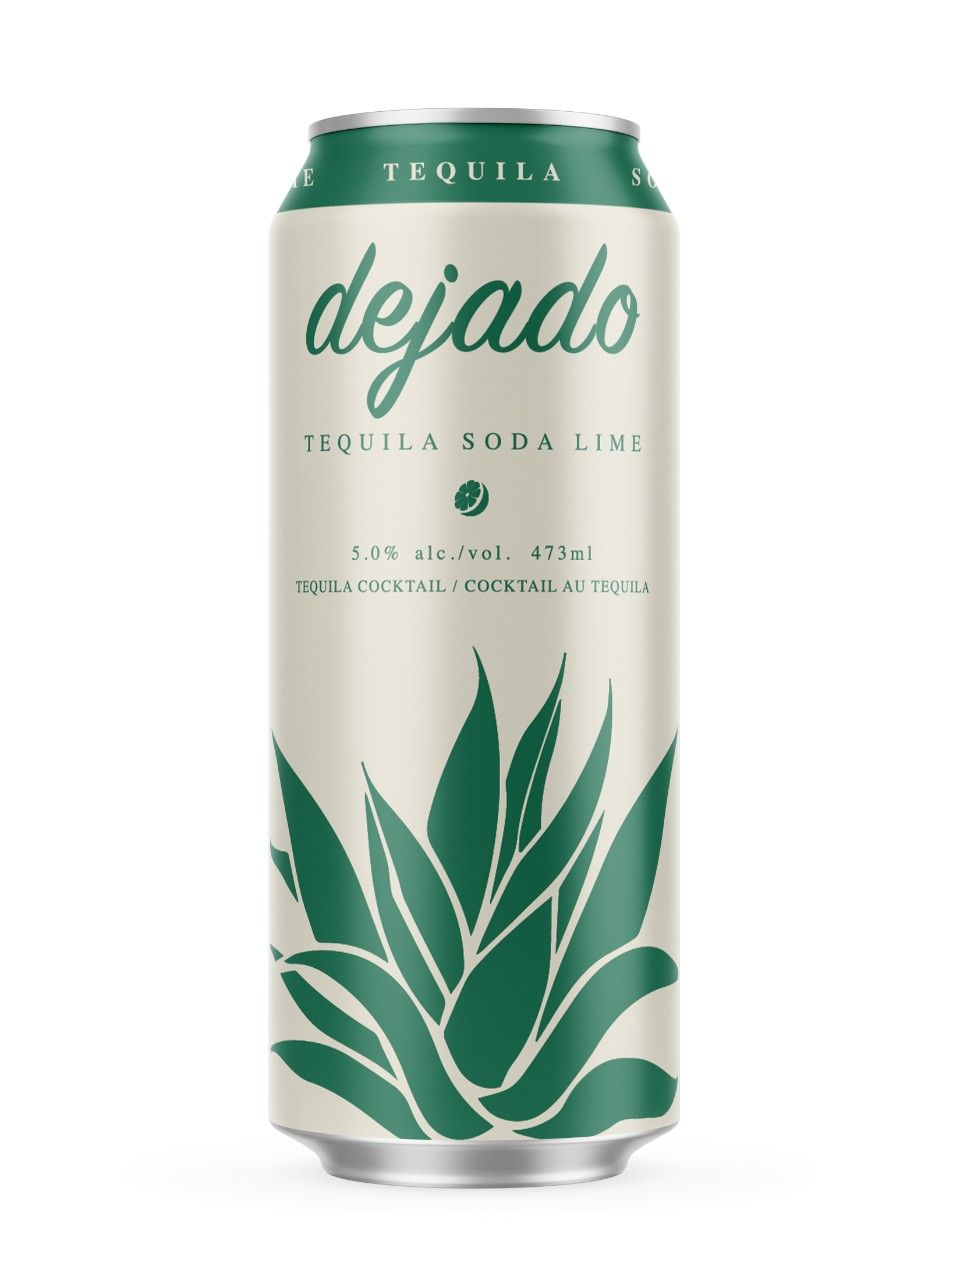 Dejado Tequila Soda Lime from LCBO